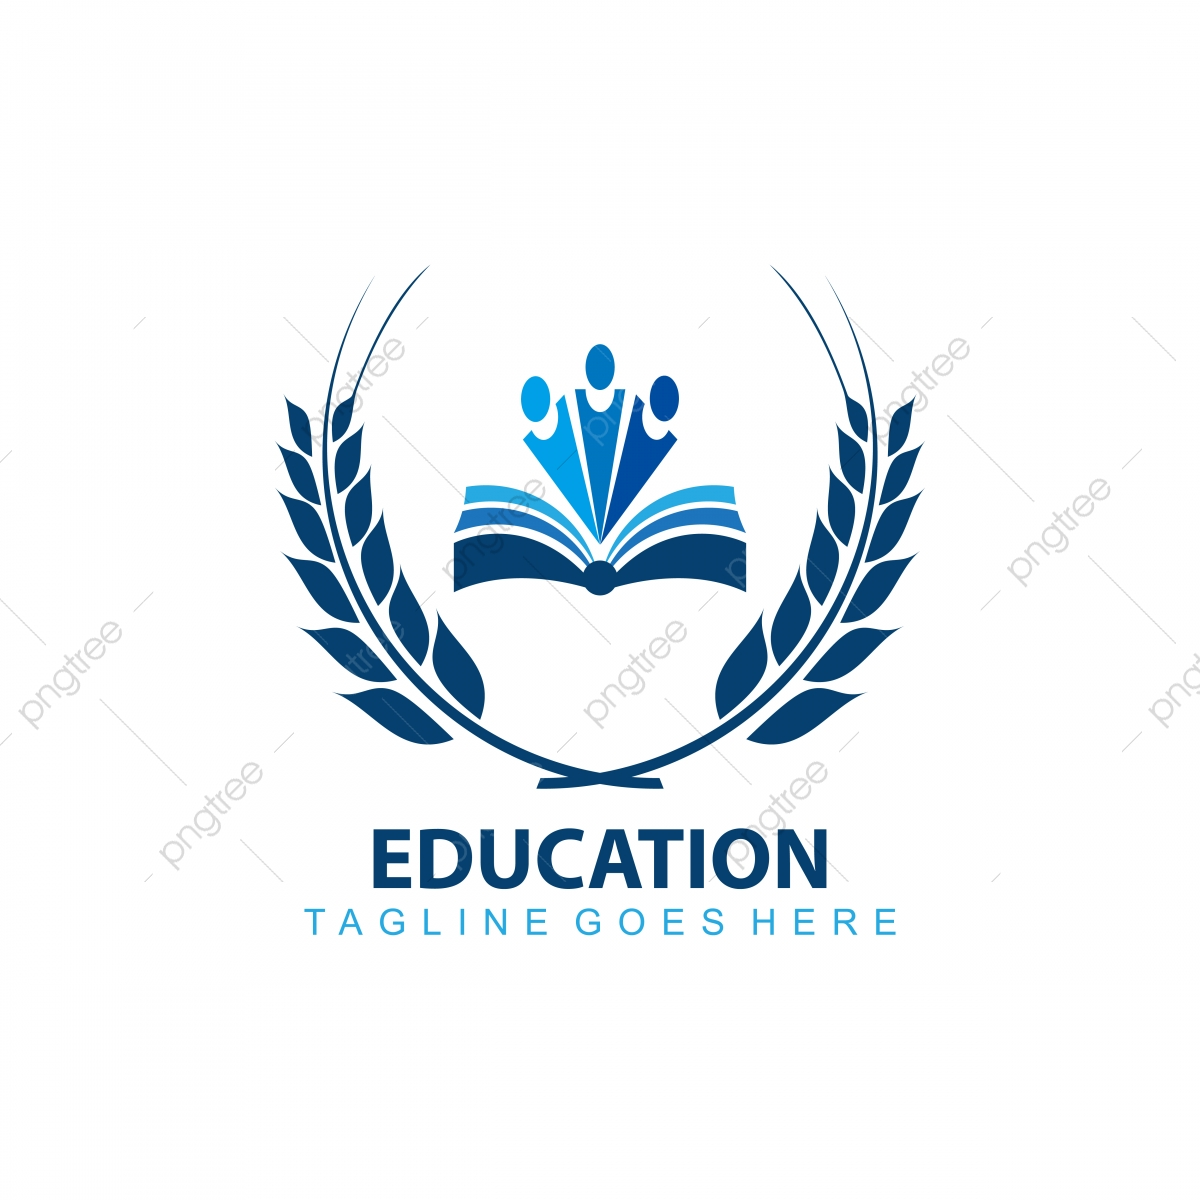 Education Logo Vector Image Education Logo Symbol Png And Vector With Transparent Background For Free Download